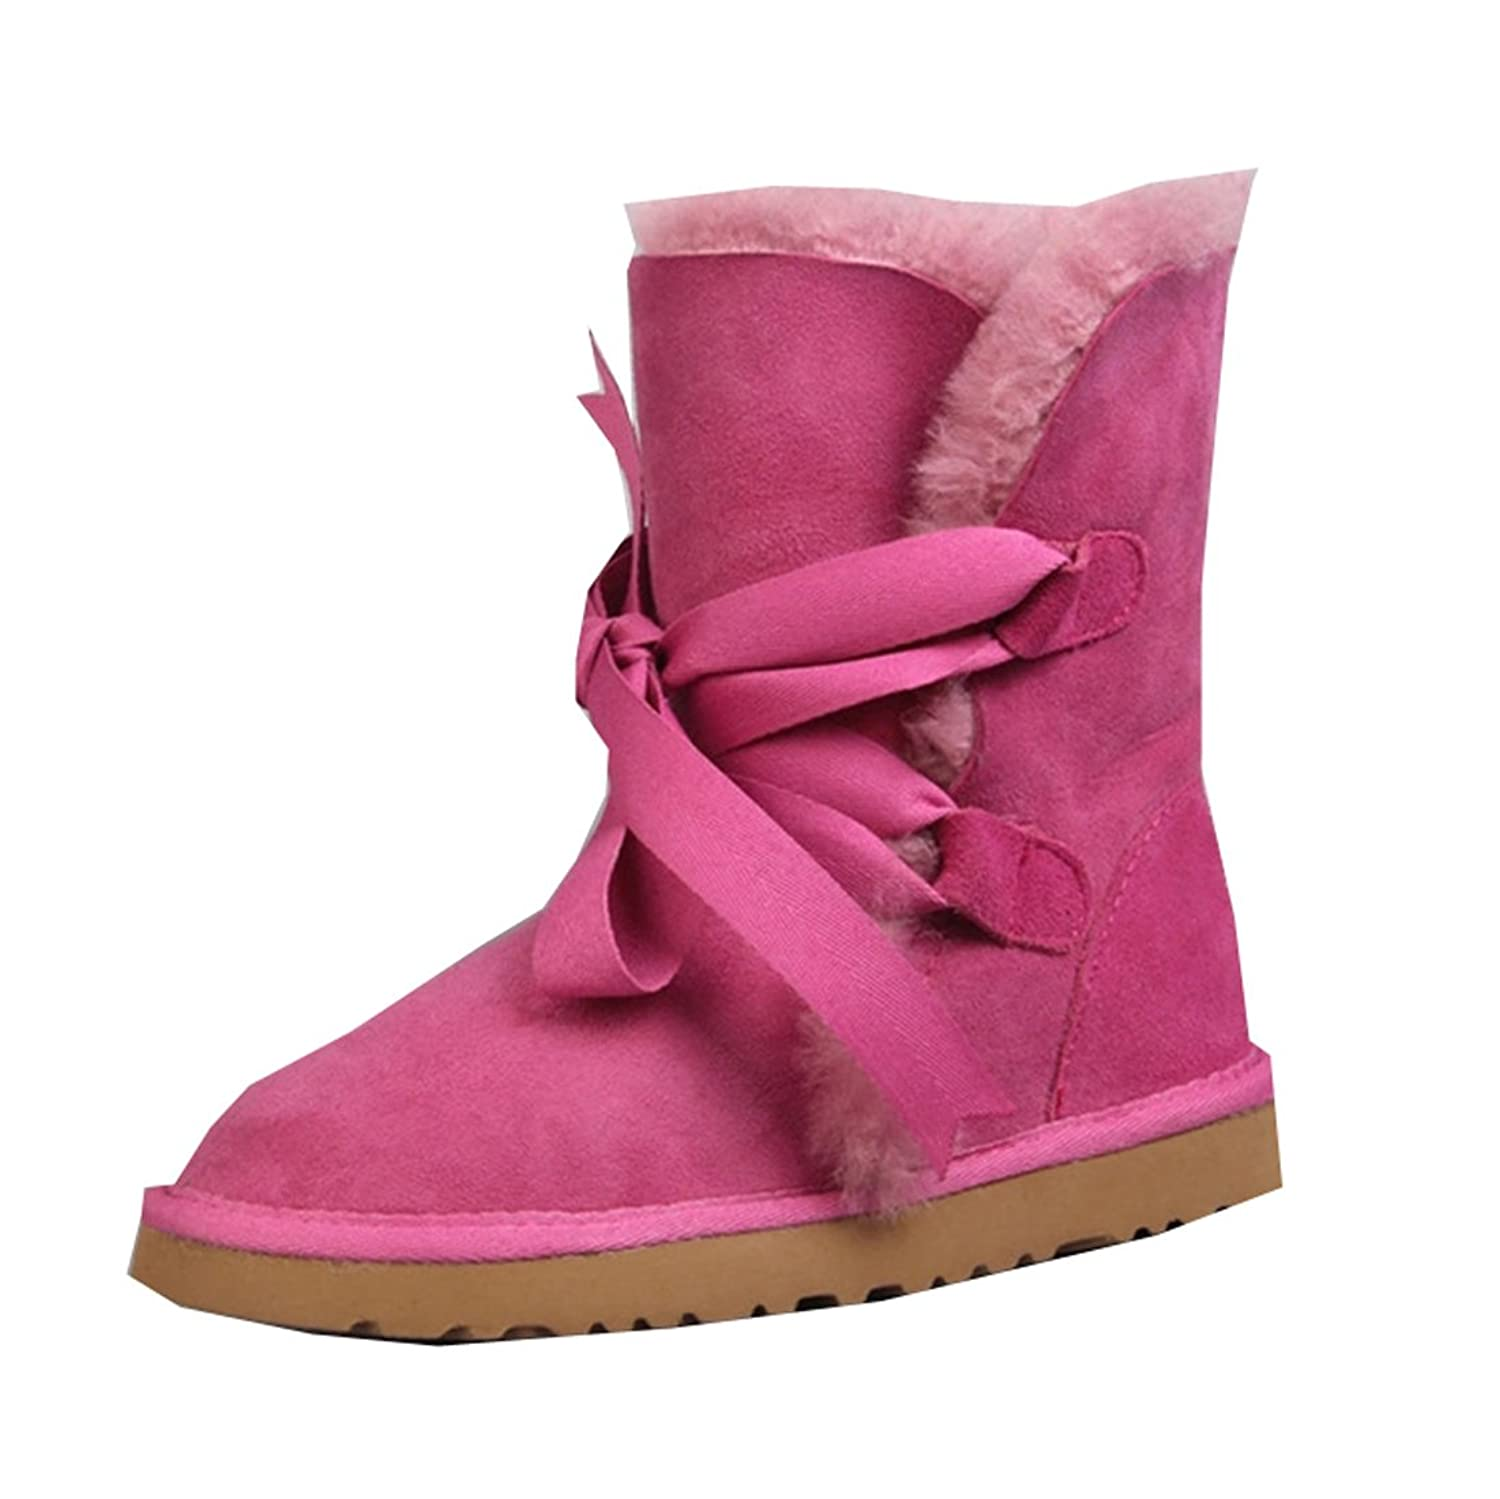 Pinklily Women's Insulation Round Toe Snow Boots